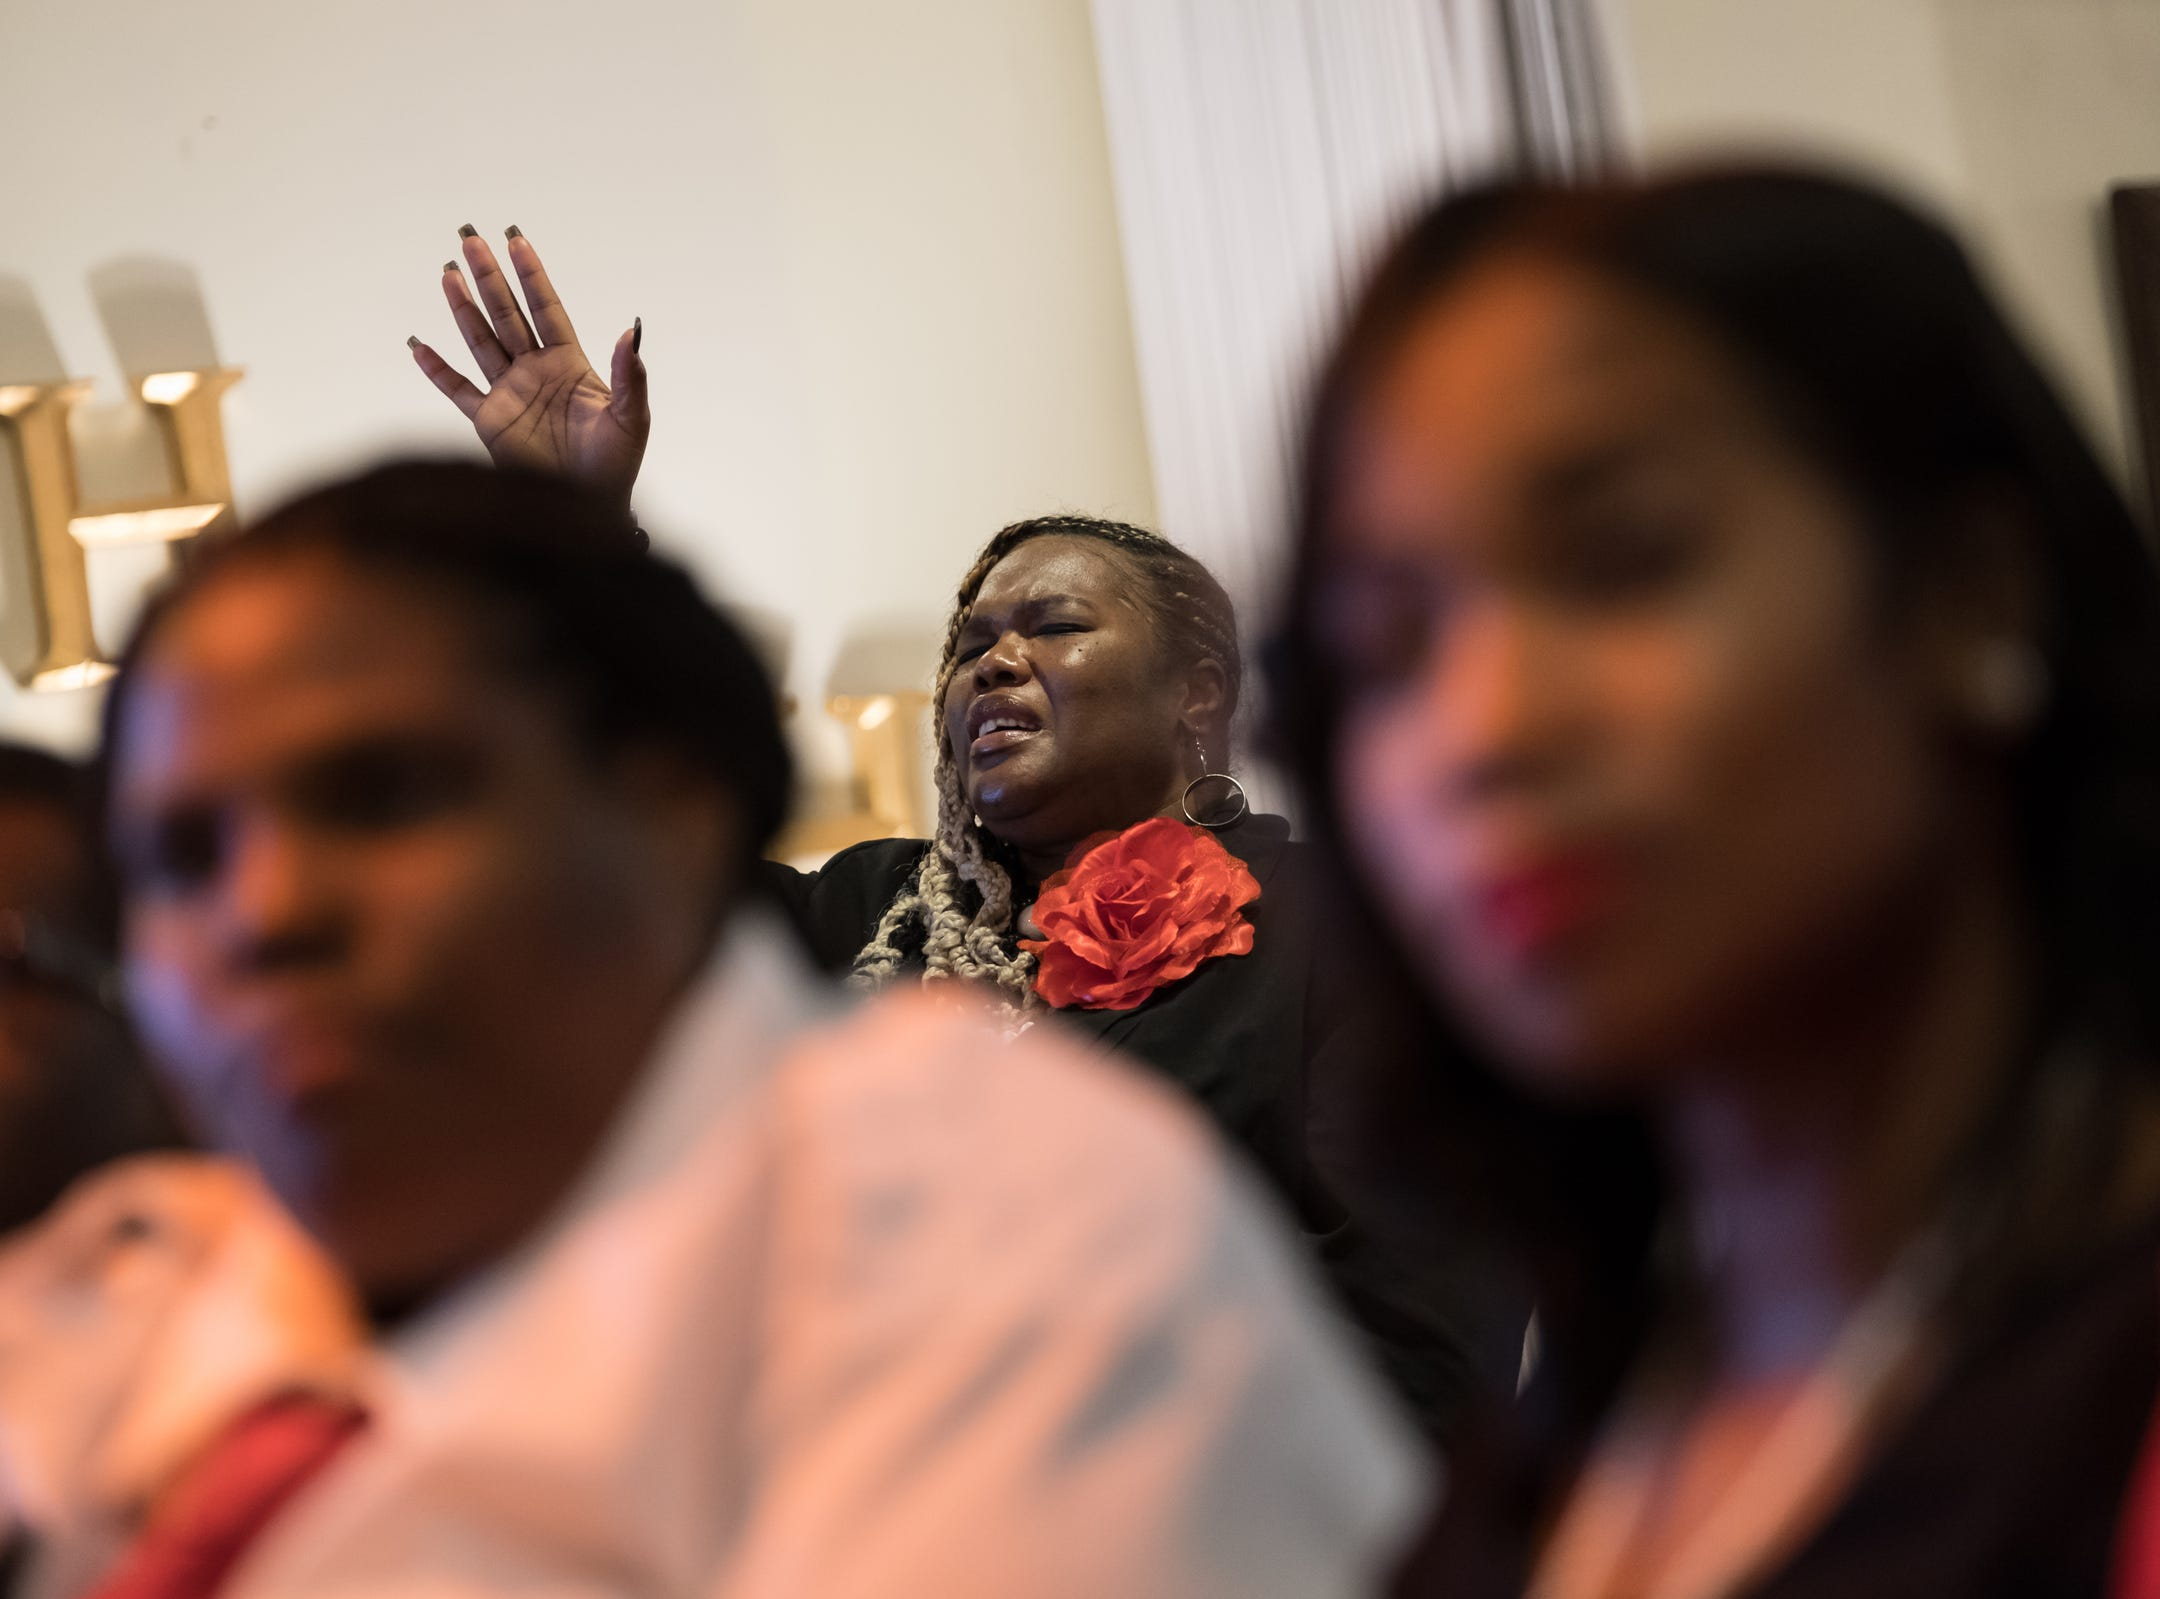 Attendees listen to a speaker during the funeral for the late Rudy Barker at Hutchison Funeral Home in Detroit on Monday, January 21, 2019. Barker was known for his impressions of late civil rights leader Martin Luther King Jr. and was buried on the national holiday honoring his hero.